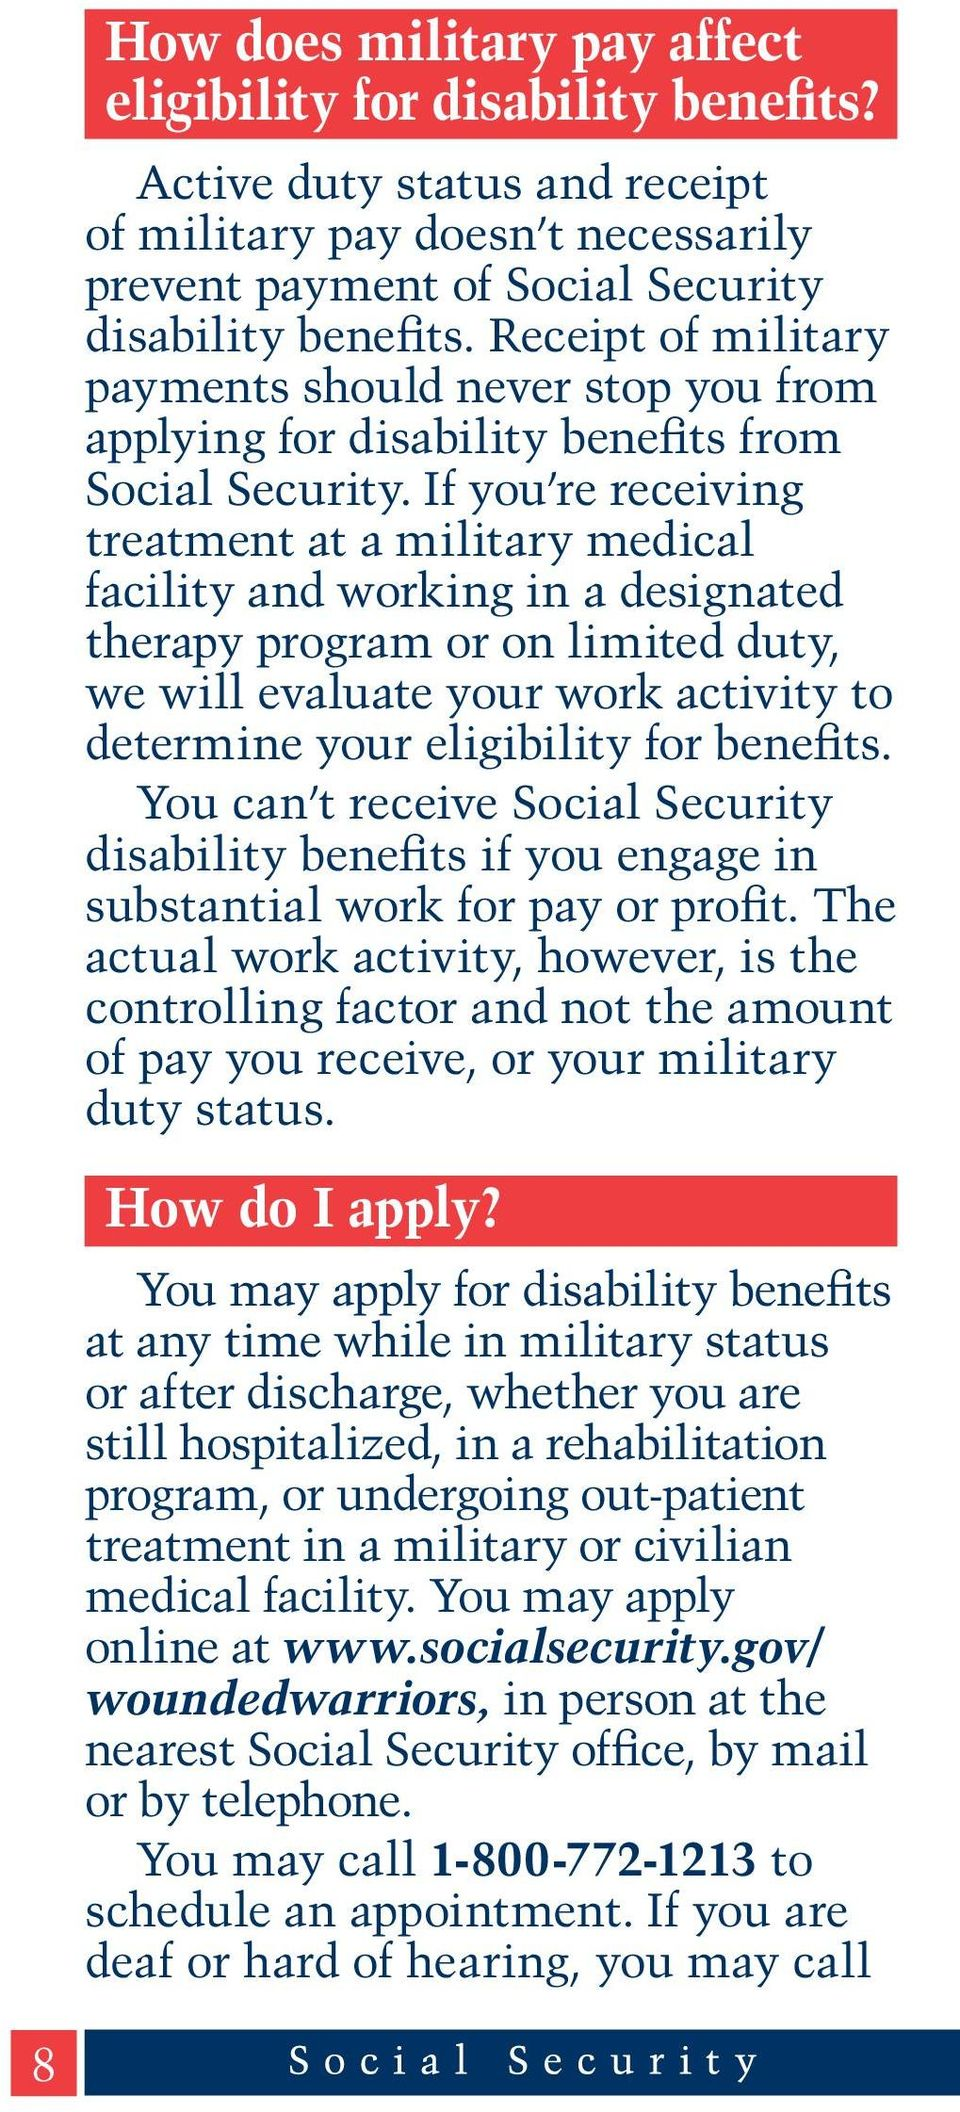 If you re receiving treatment at a military medical facility and working in a designated therapy program or on limited duty, we will evaluate your work activity to determine your eligibility for